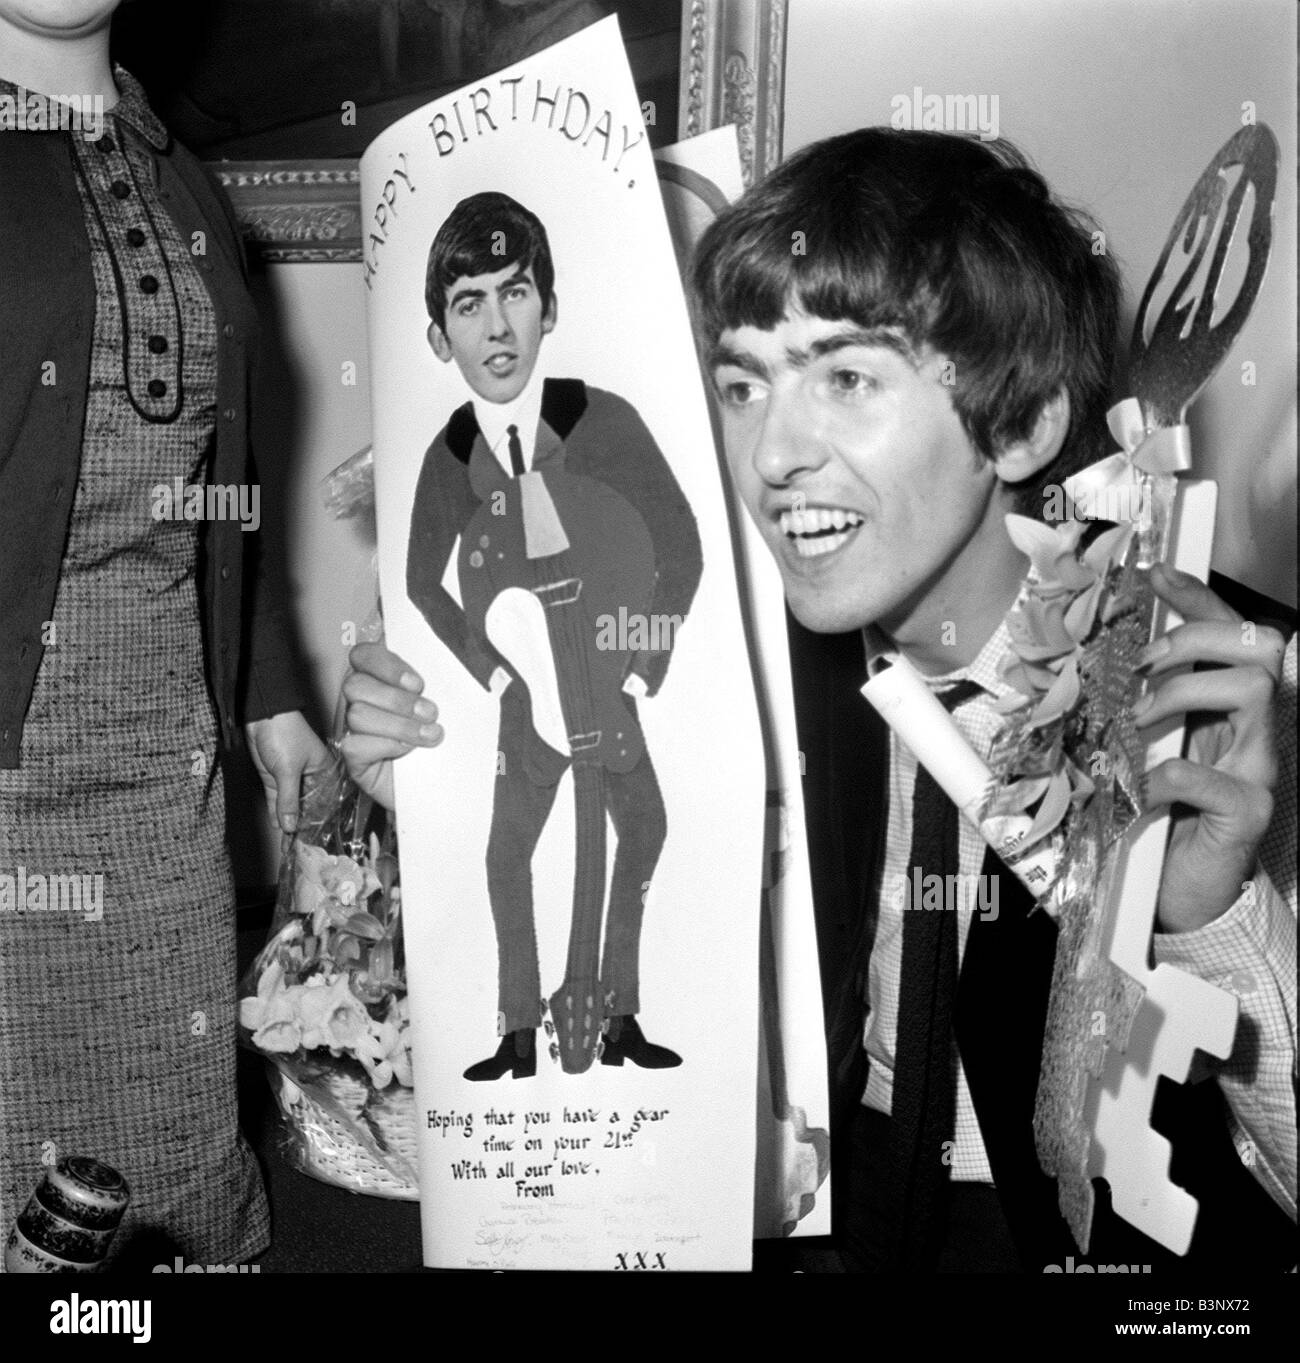 The beatles february 1964 george harrison sorting through the 52 the beatles february 1964 george harrison sorting through the 52 sacks full of greeting cards and parcels on his 21st birthday m4hsunfo